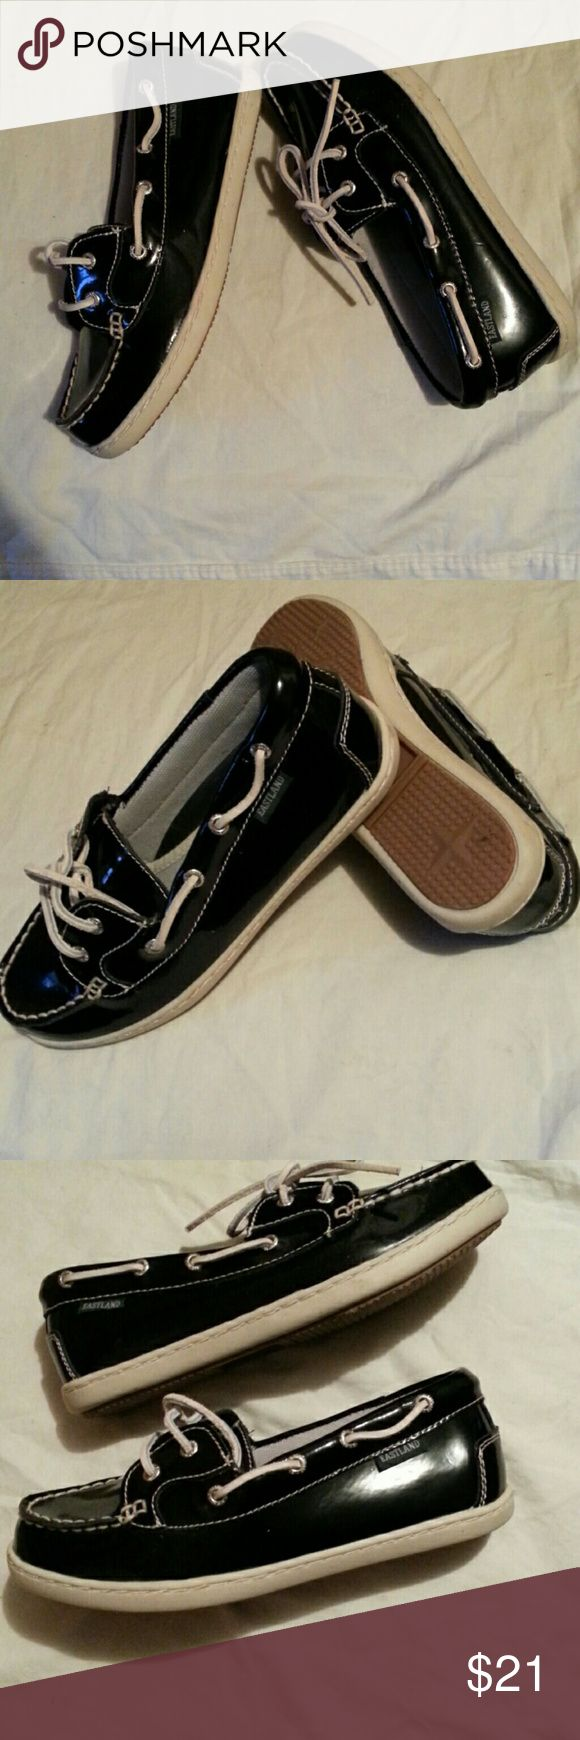 Eastland  shiny  leather  loafers#NWOT'S Black  leather  loafers  size  6.5m Eastland   Shoes Flats & Loafers